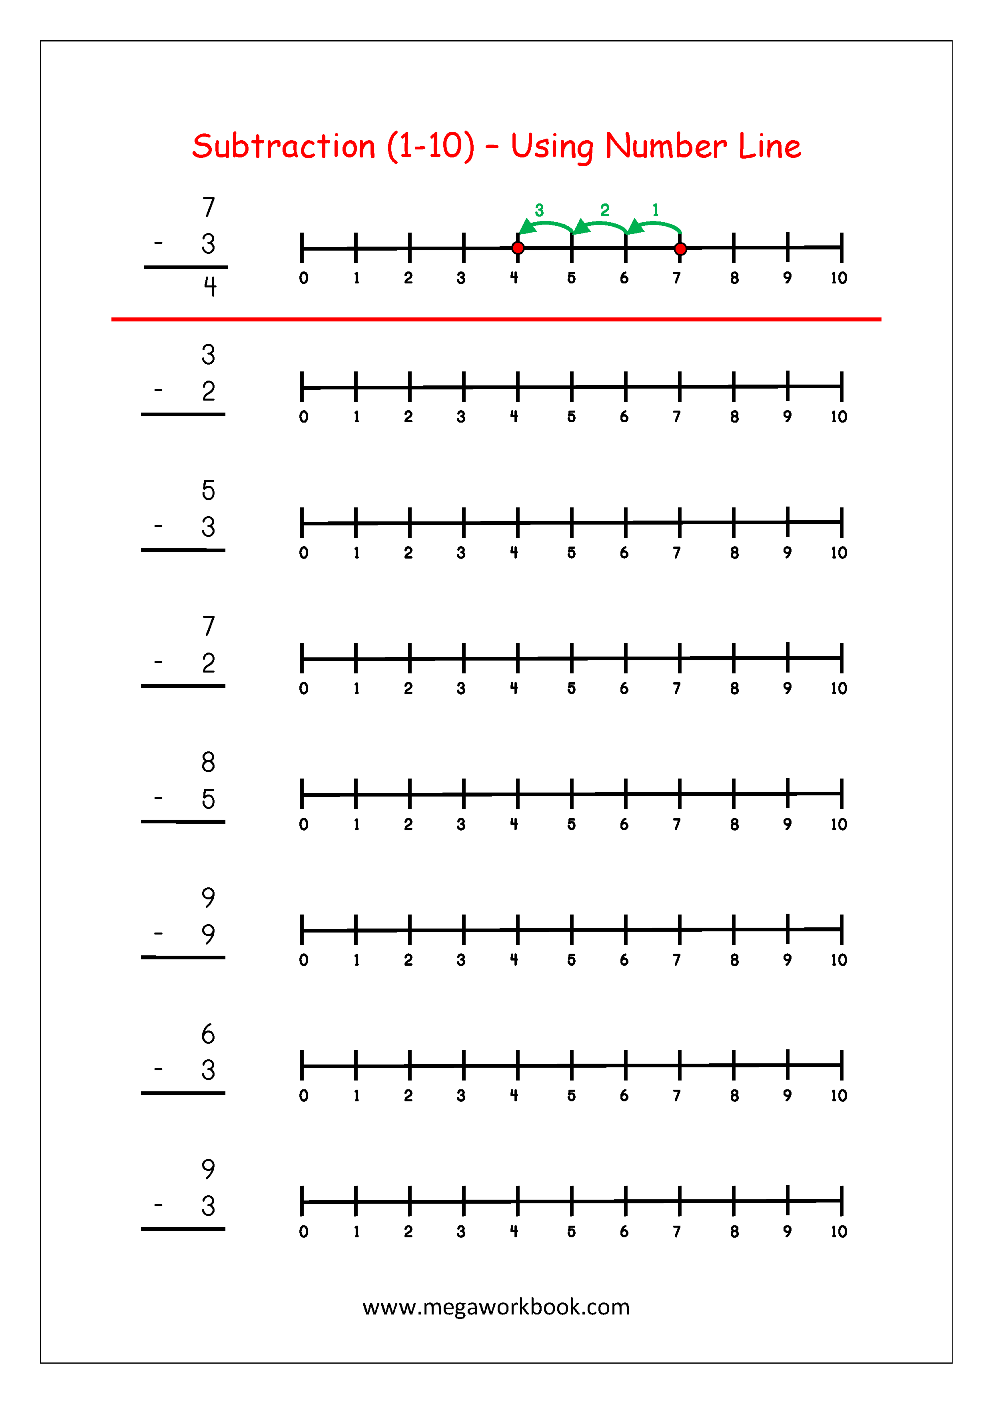 Uncategorized Blank Number Line Worksheets free math worksheets subtraction megaworkbook worksheet using number line 1 10